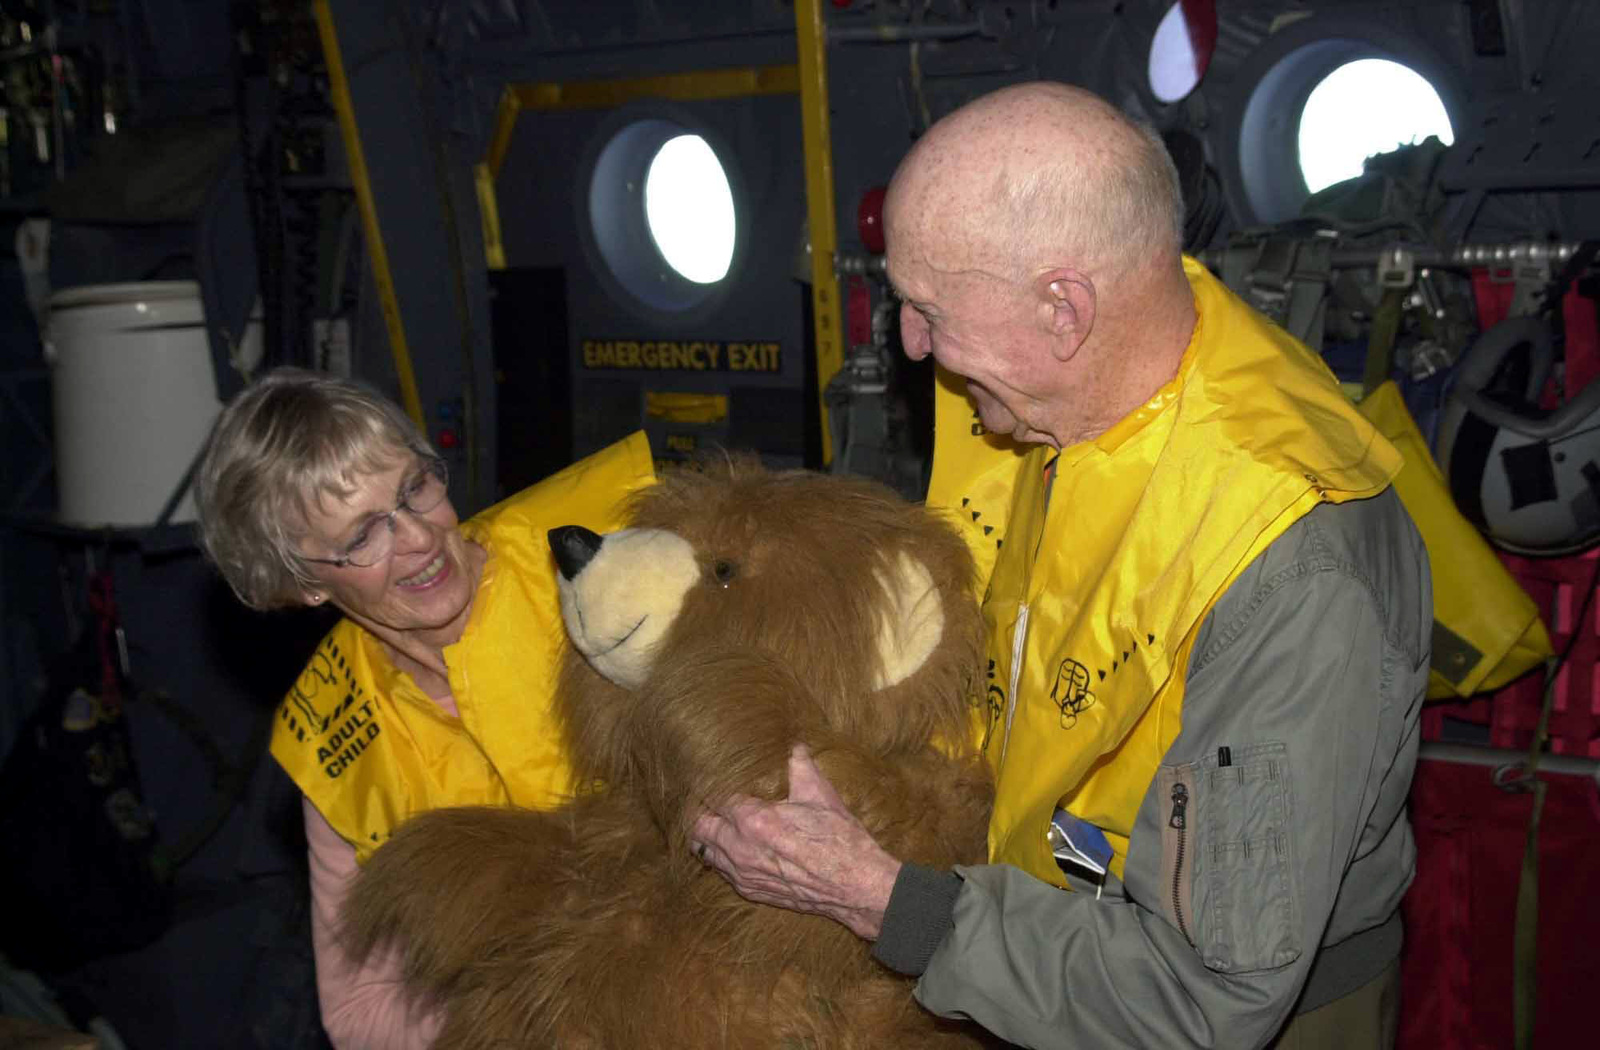 On board a US Air Force (USAF) C-130 Hercules from Yokota Air Base (AB), Japan, retired USAF Colonel (COL) Gail Halvorsen, the Candy Bomber and his wife Lorraine inspect a stuffed bear to be dropped during the first flight of the 50th anniversary flights called the Christmas Drop on Dec. 21 2002